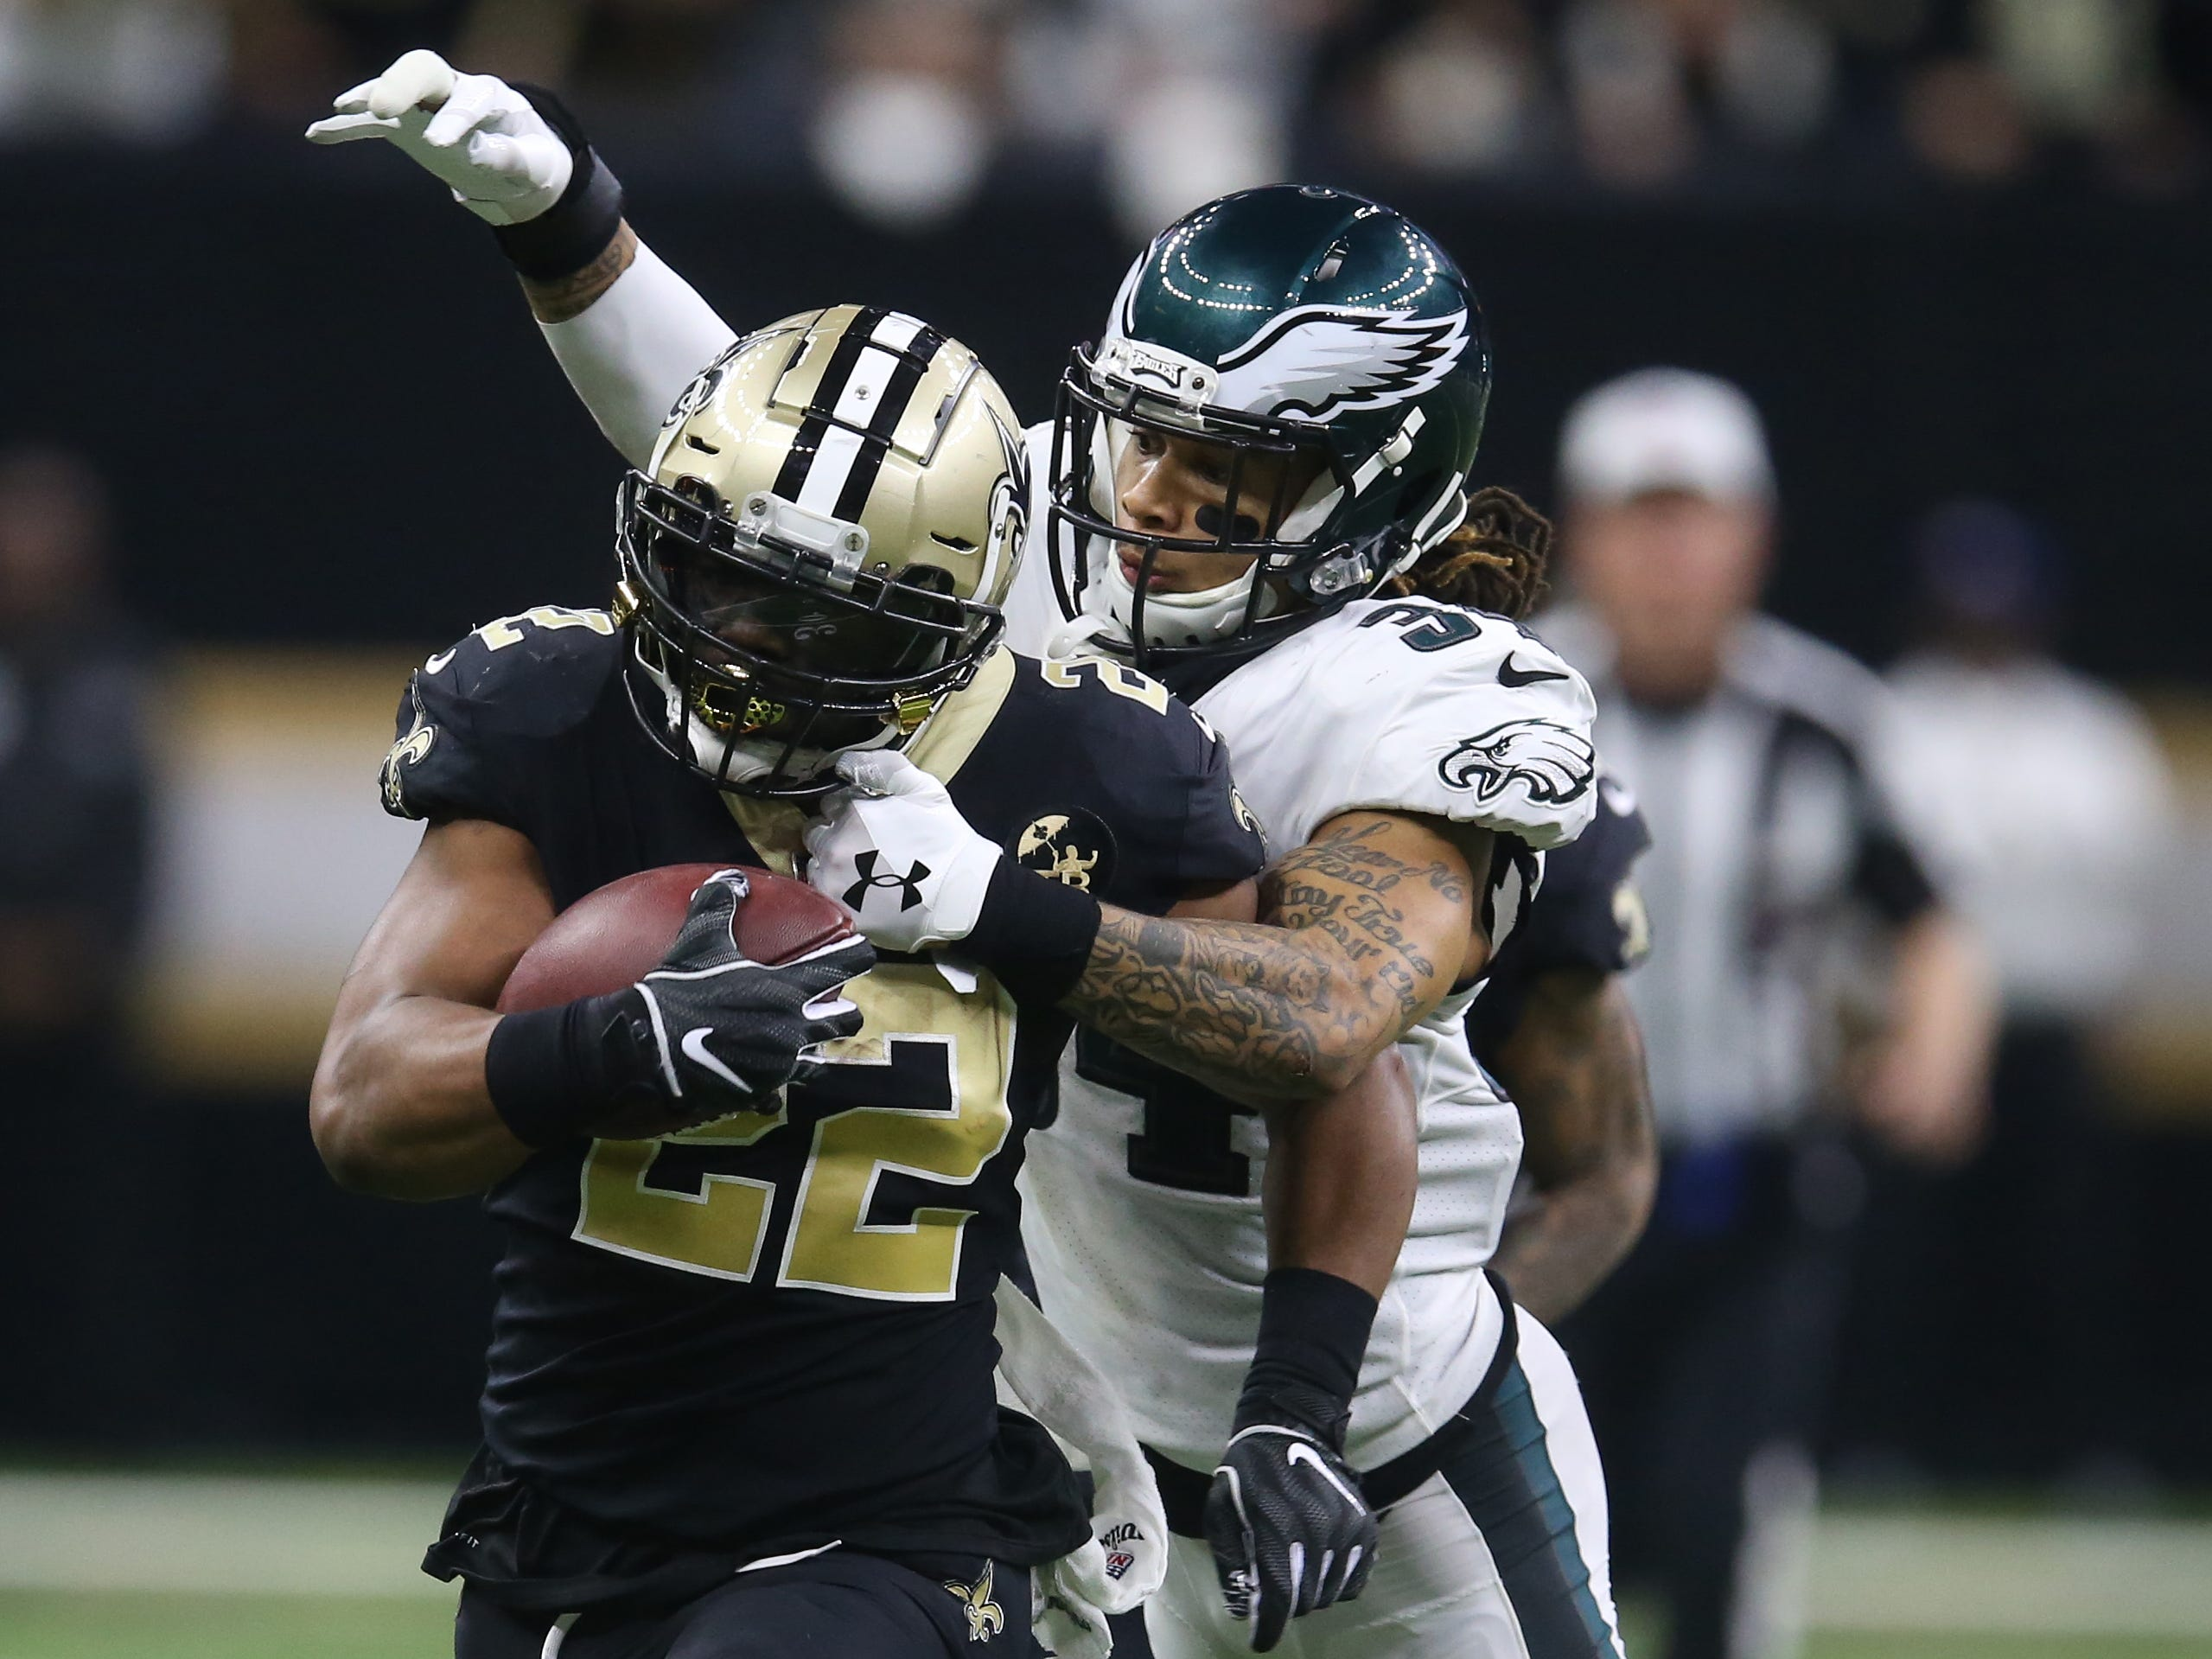 New Orleans Saints running back Mark Ingram runs against the Philadelphia Eagles during the fourth quarter of a NFC divisional playoff game at Mercedes-Benz Superdome.